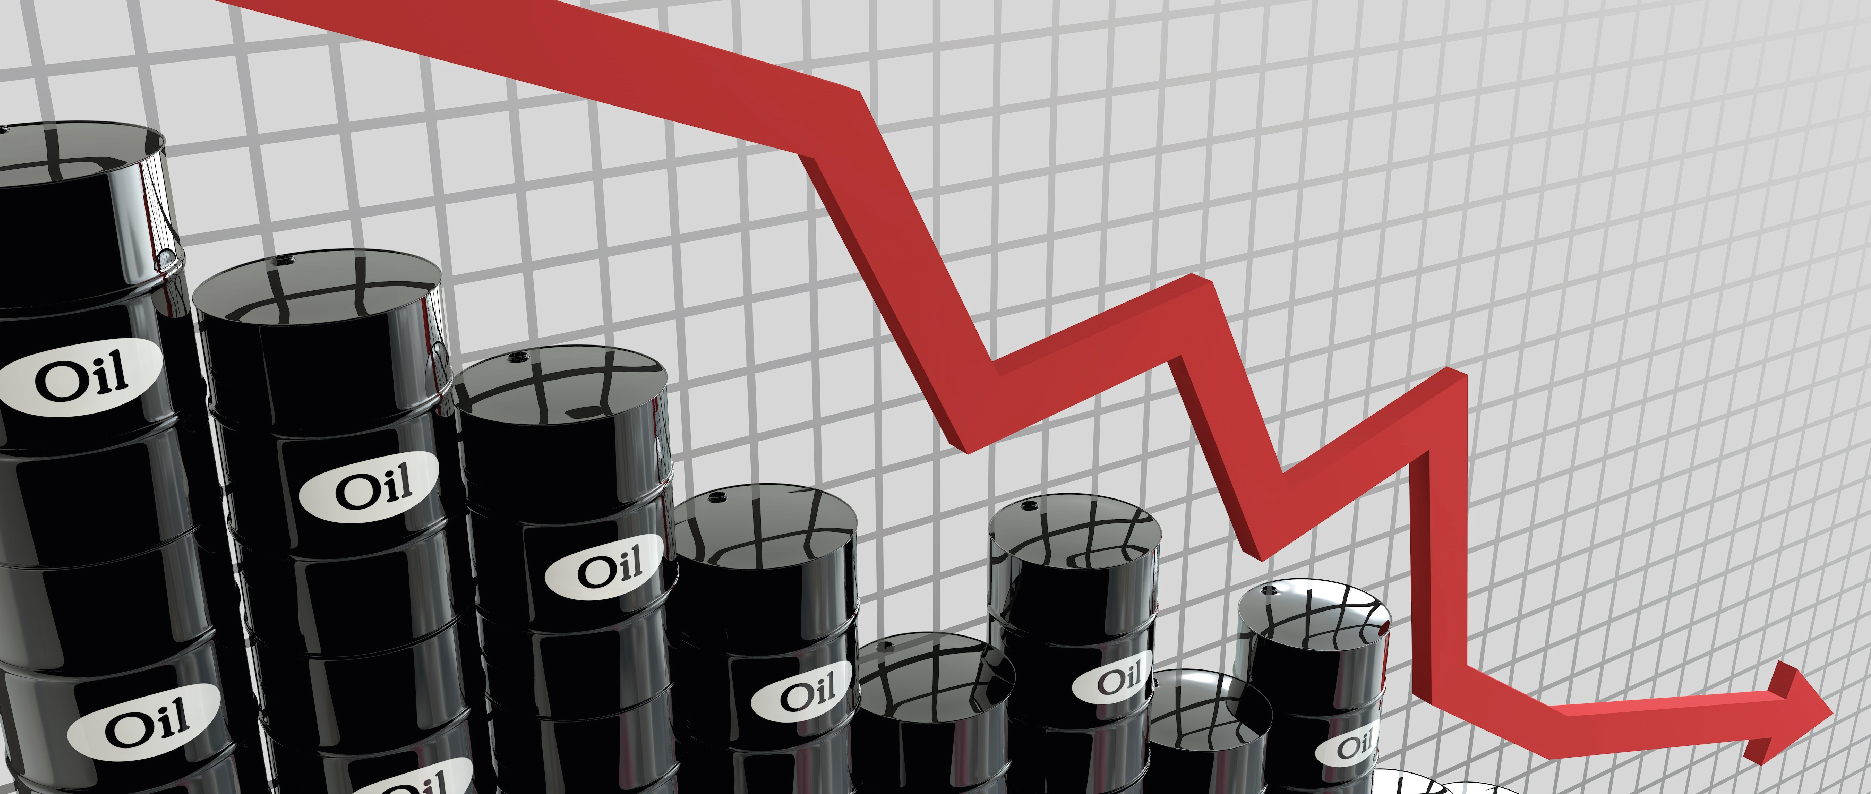 Oil price crash causes worst day for markets since depths of financial crisis